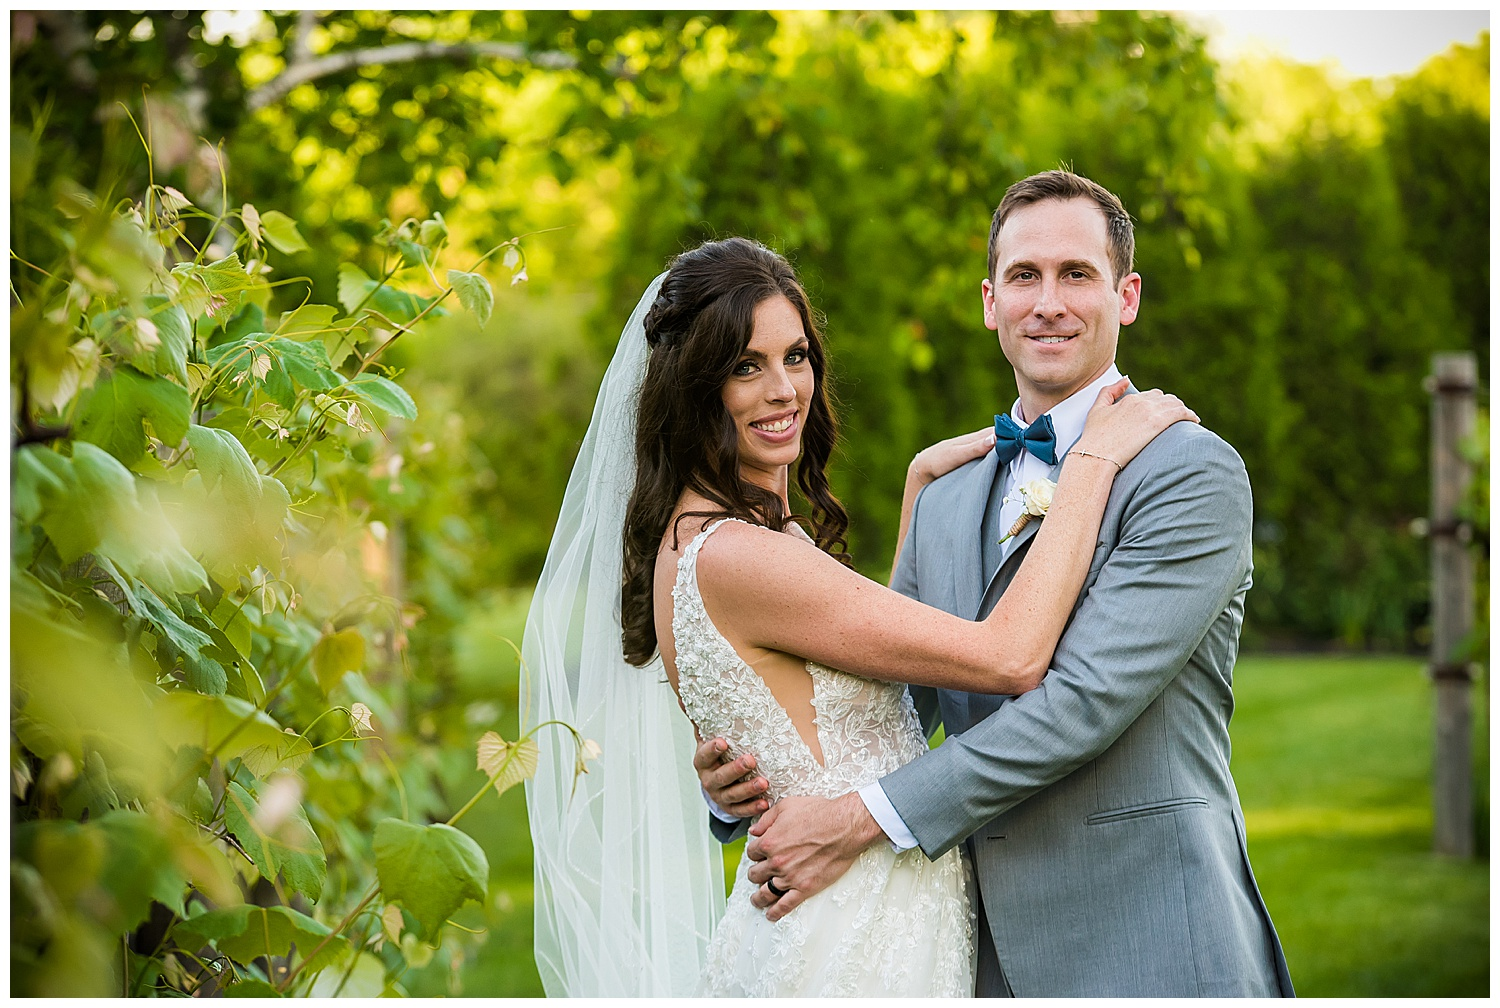 Erin & Joe – Birch Wood Vineyards Wedding